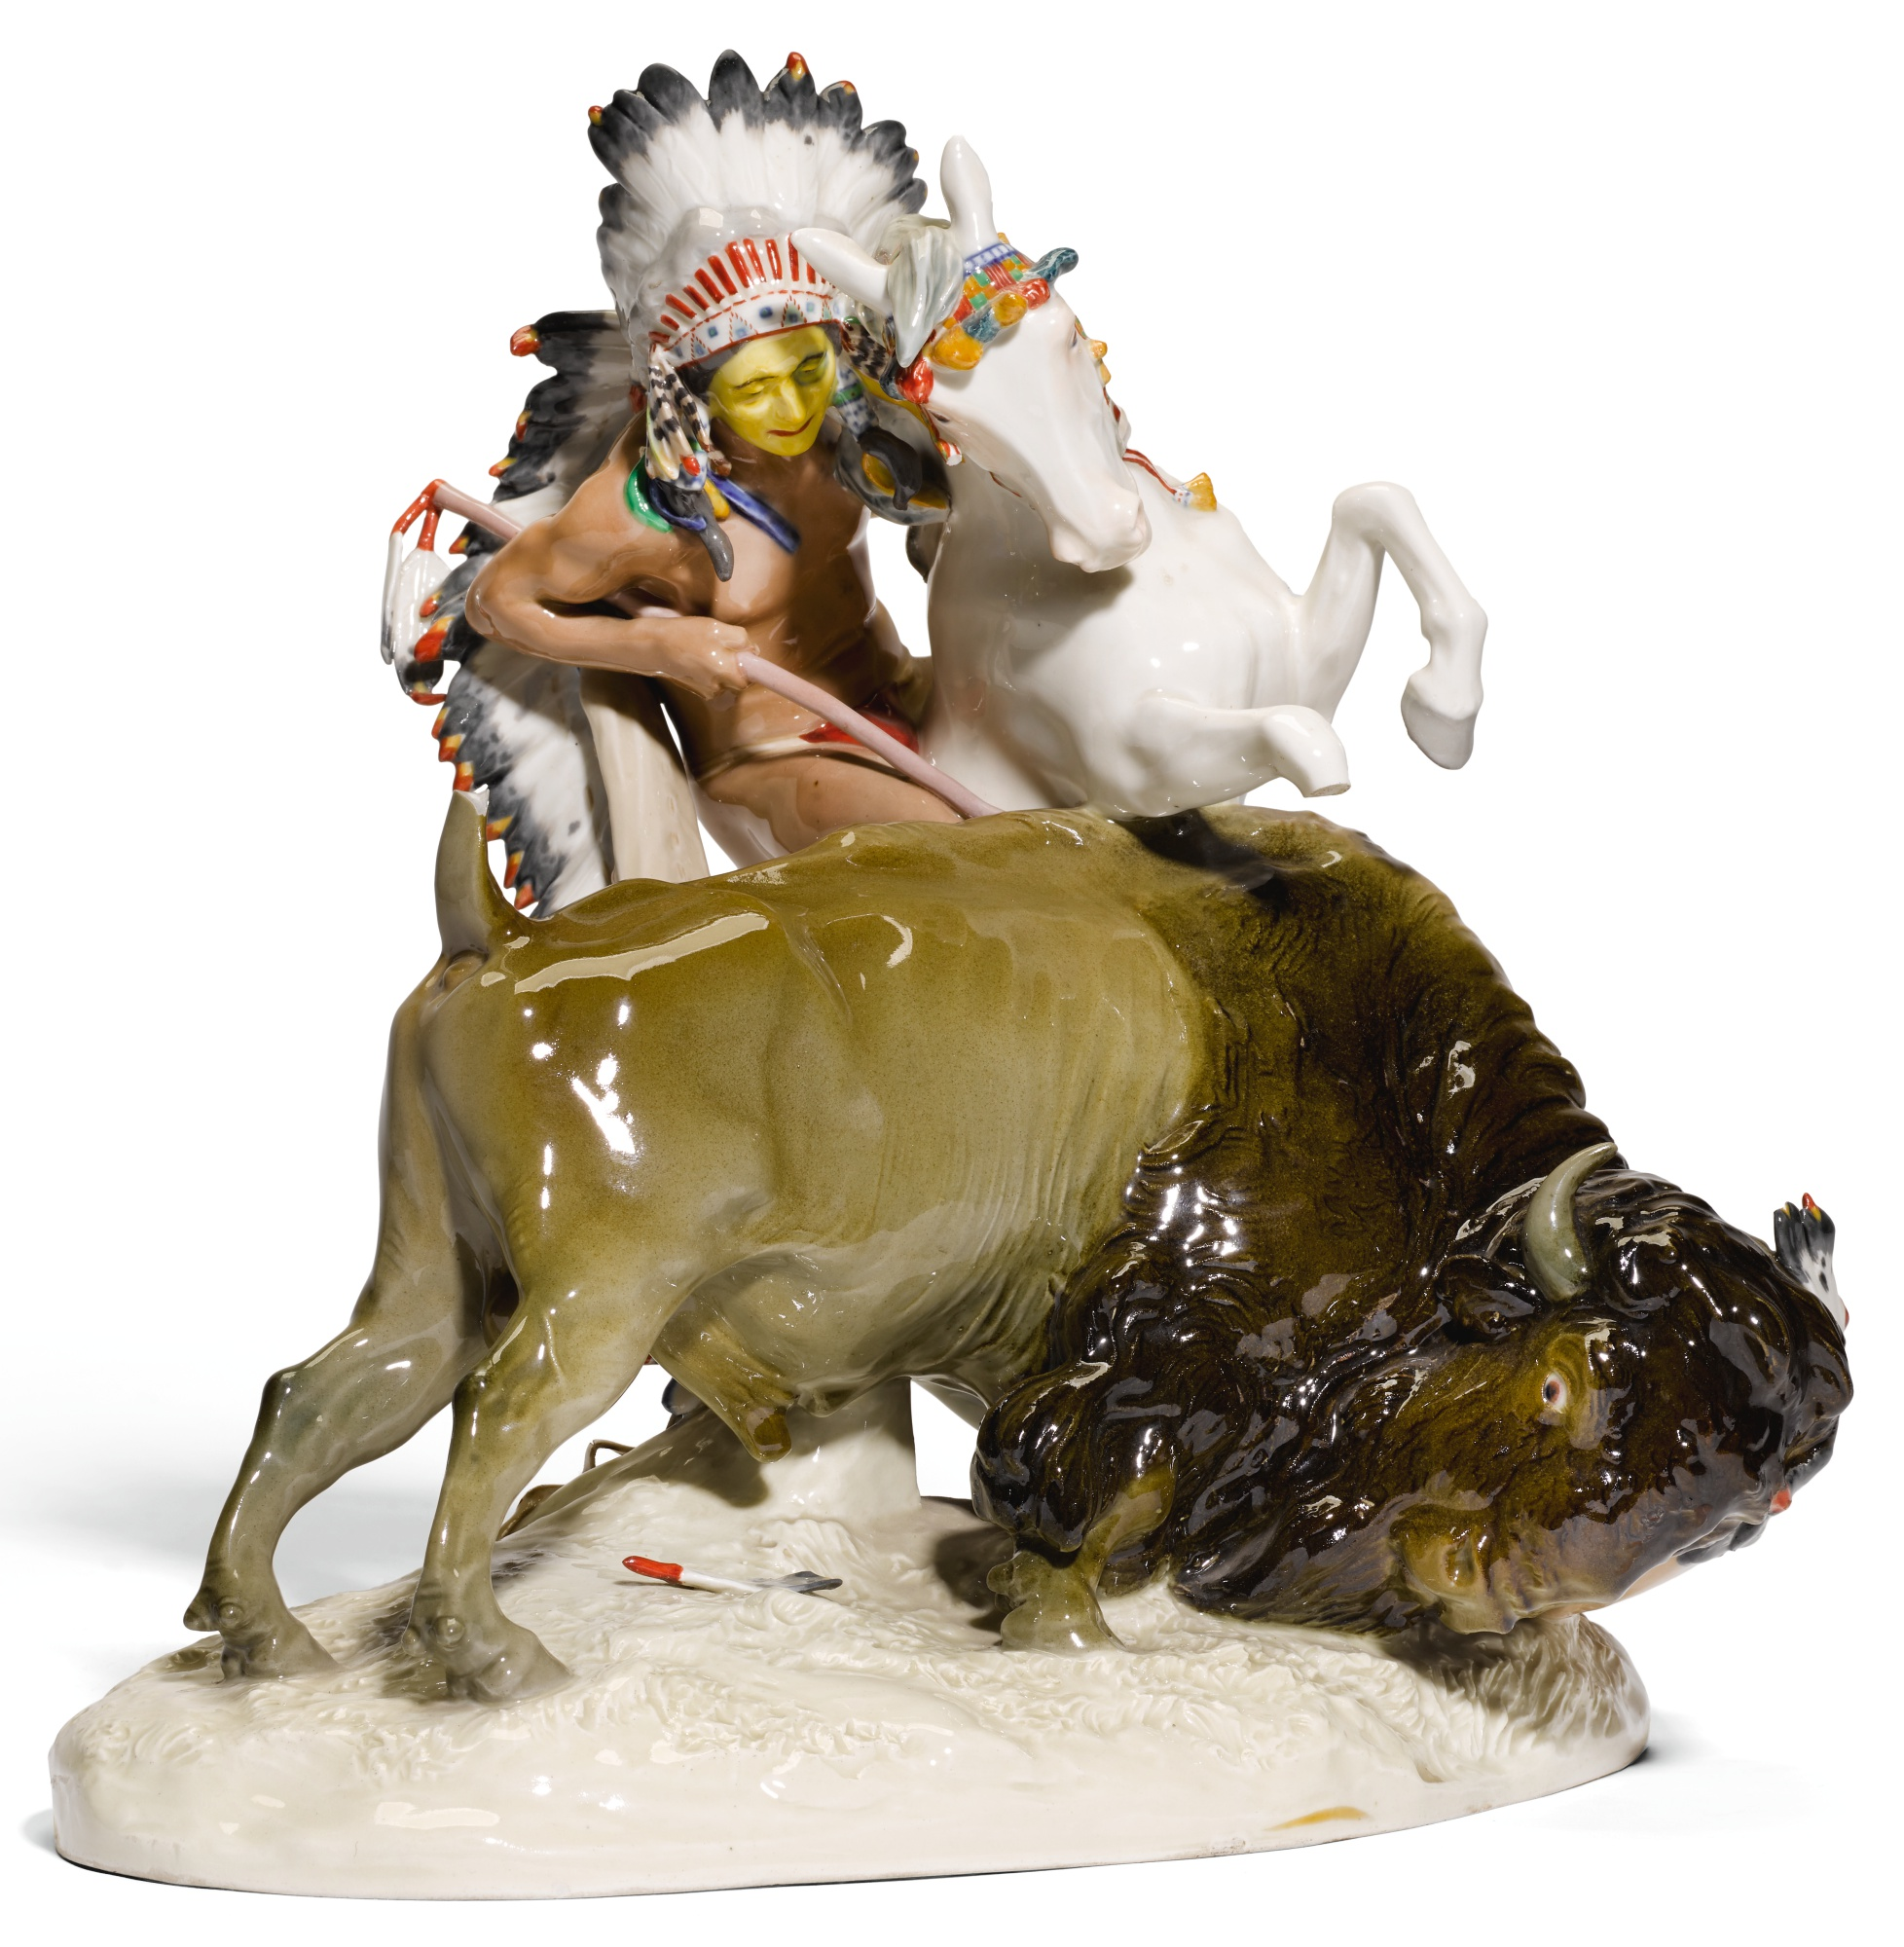 A MEISSEN ALLEGORICAL GROUP OF A BRAVE AND BISON, EMBLEMATIC OF THE AMERICAS FROM A SET OF THE CONTINENTS, CIRCA 1906